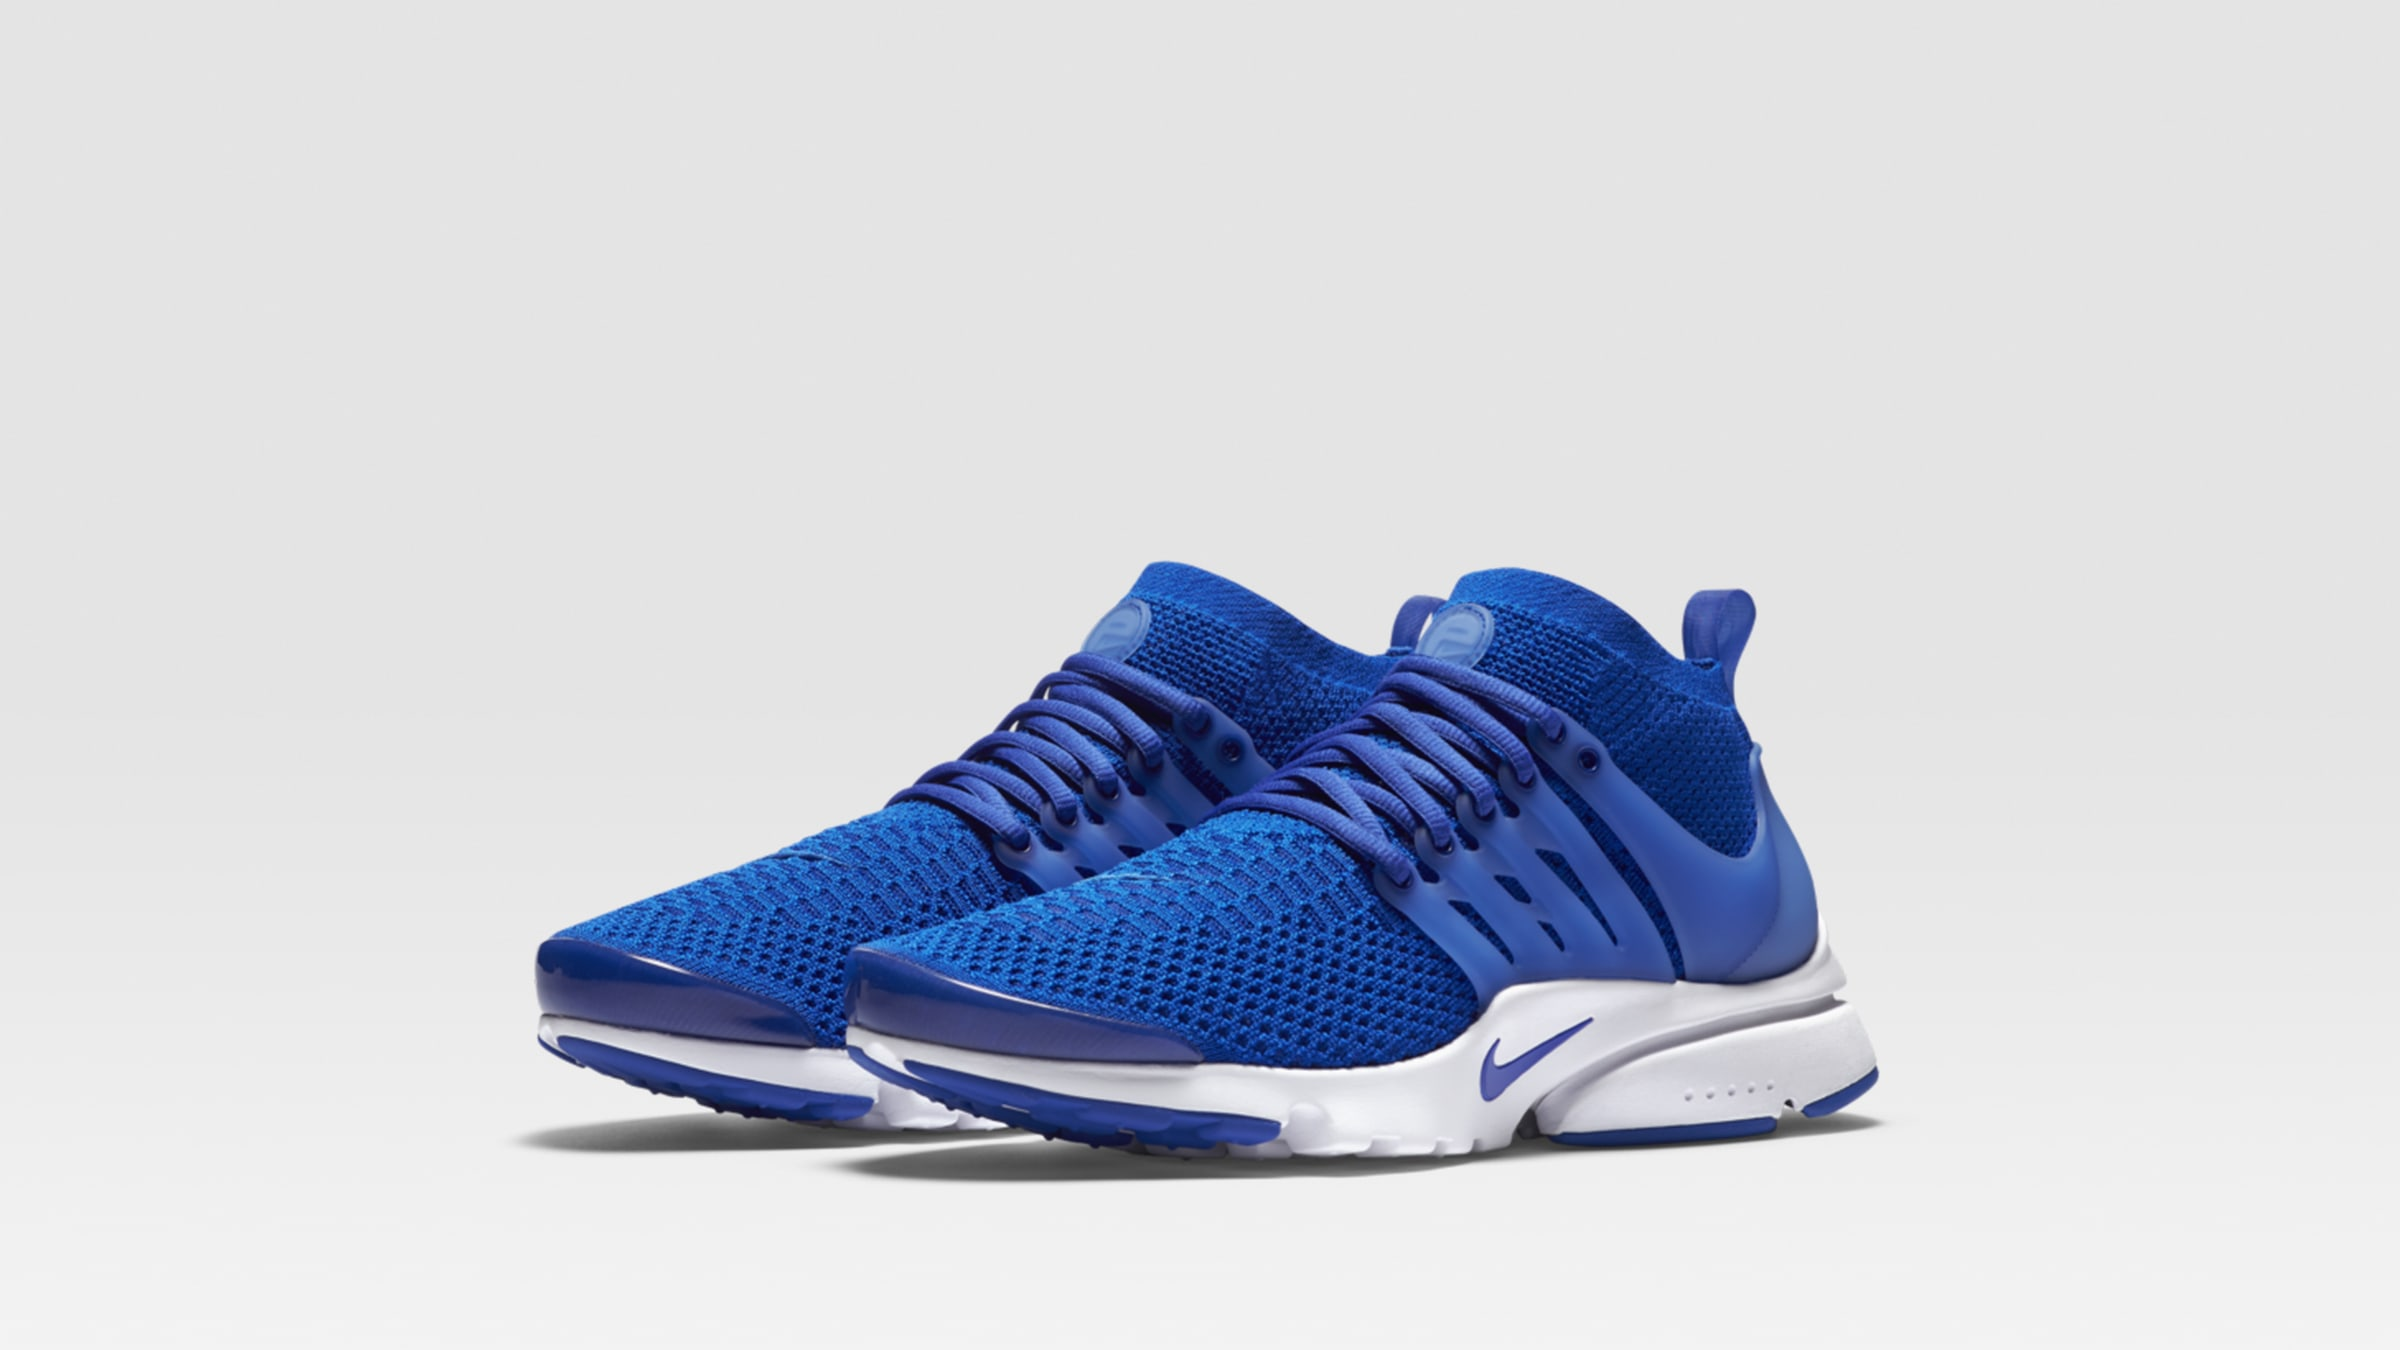 promo code b0cc6 f3872 Nike Air Presto Ultra Flyknit Racer Blue   White   END.